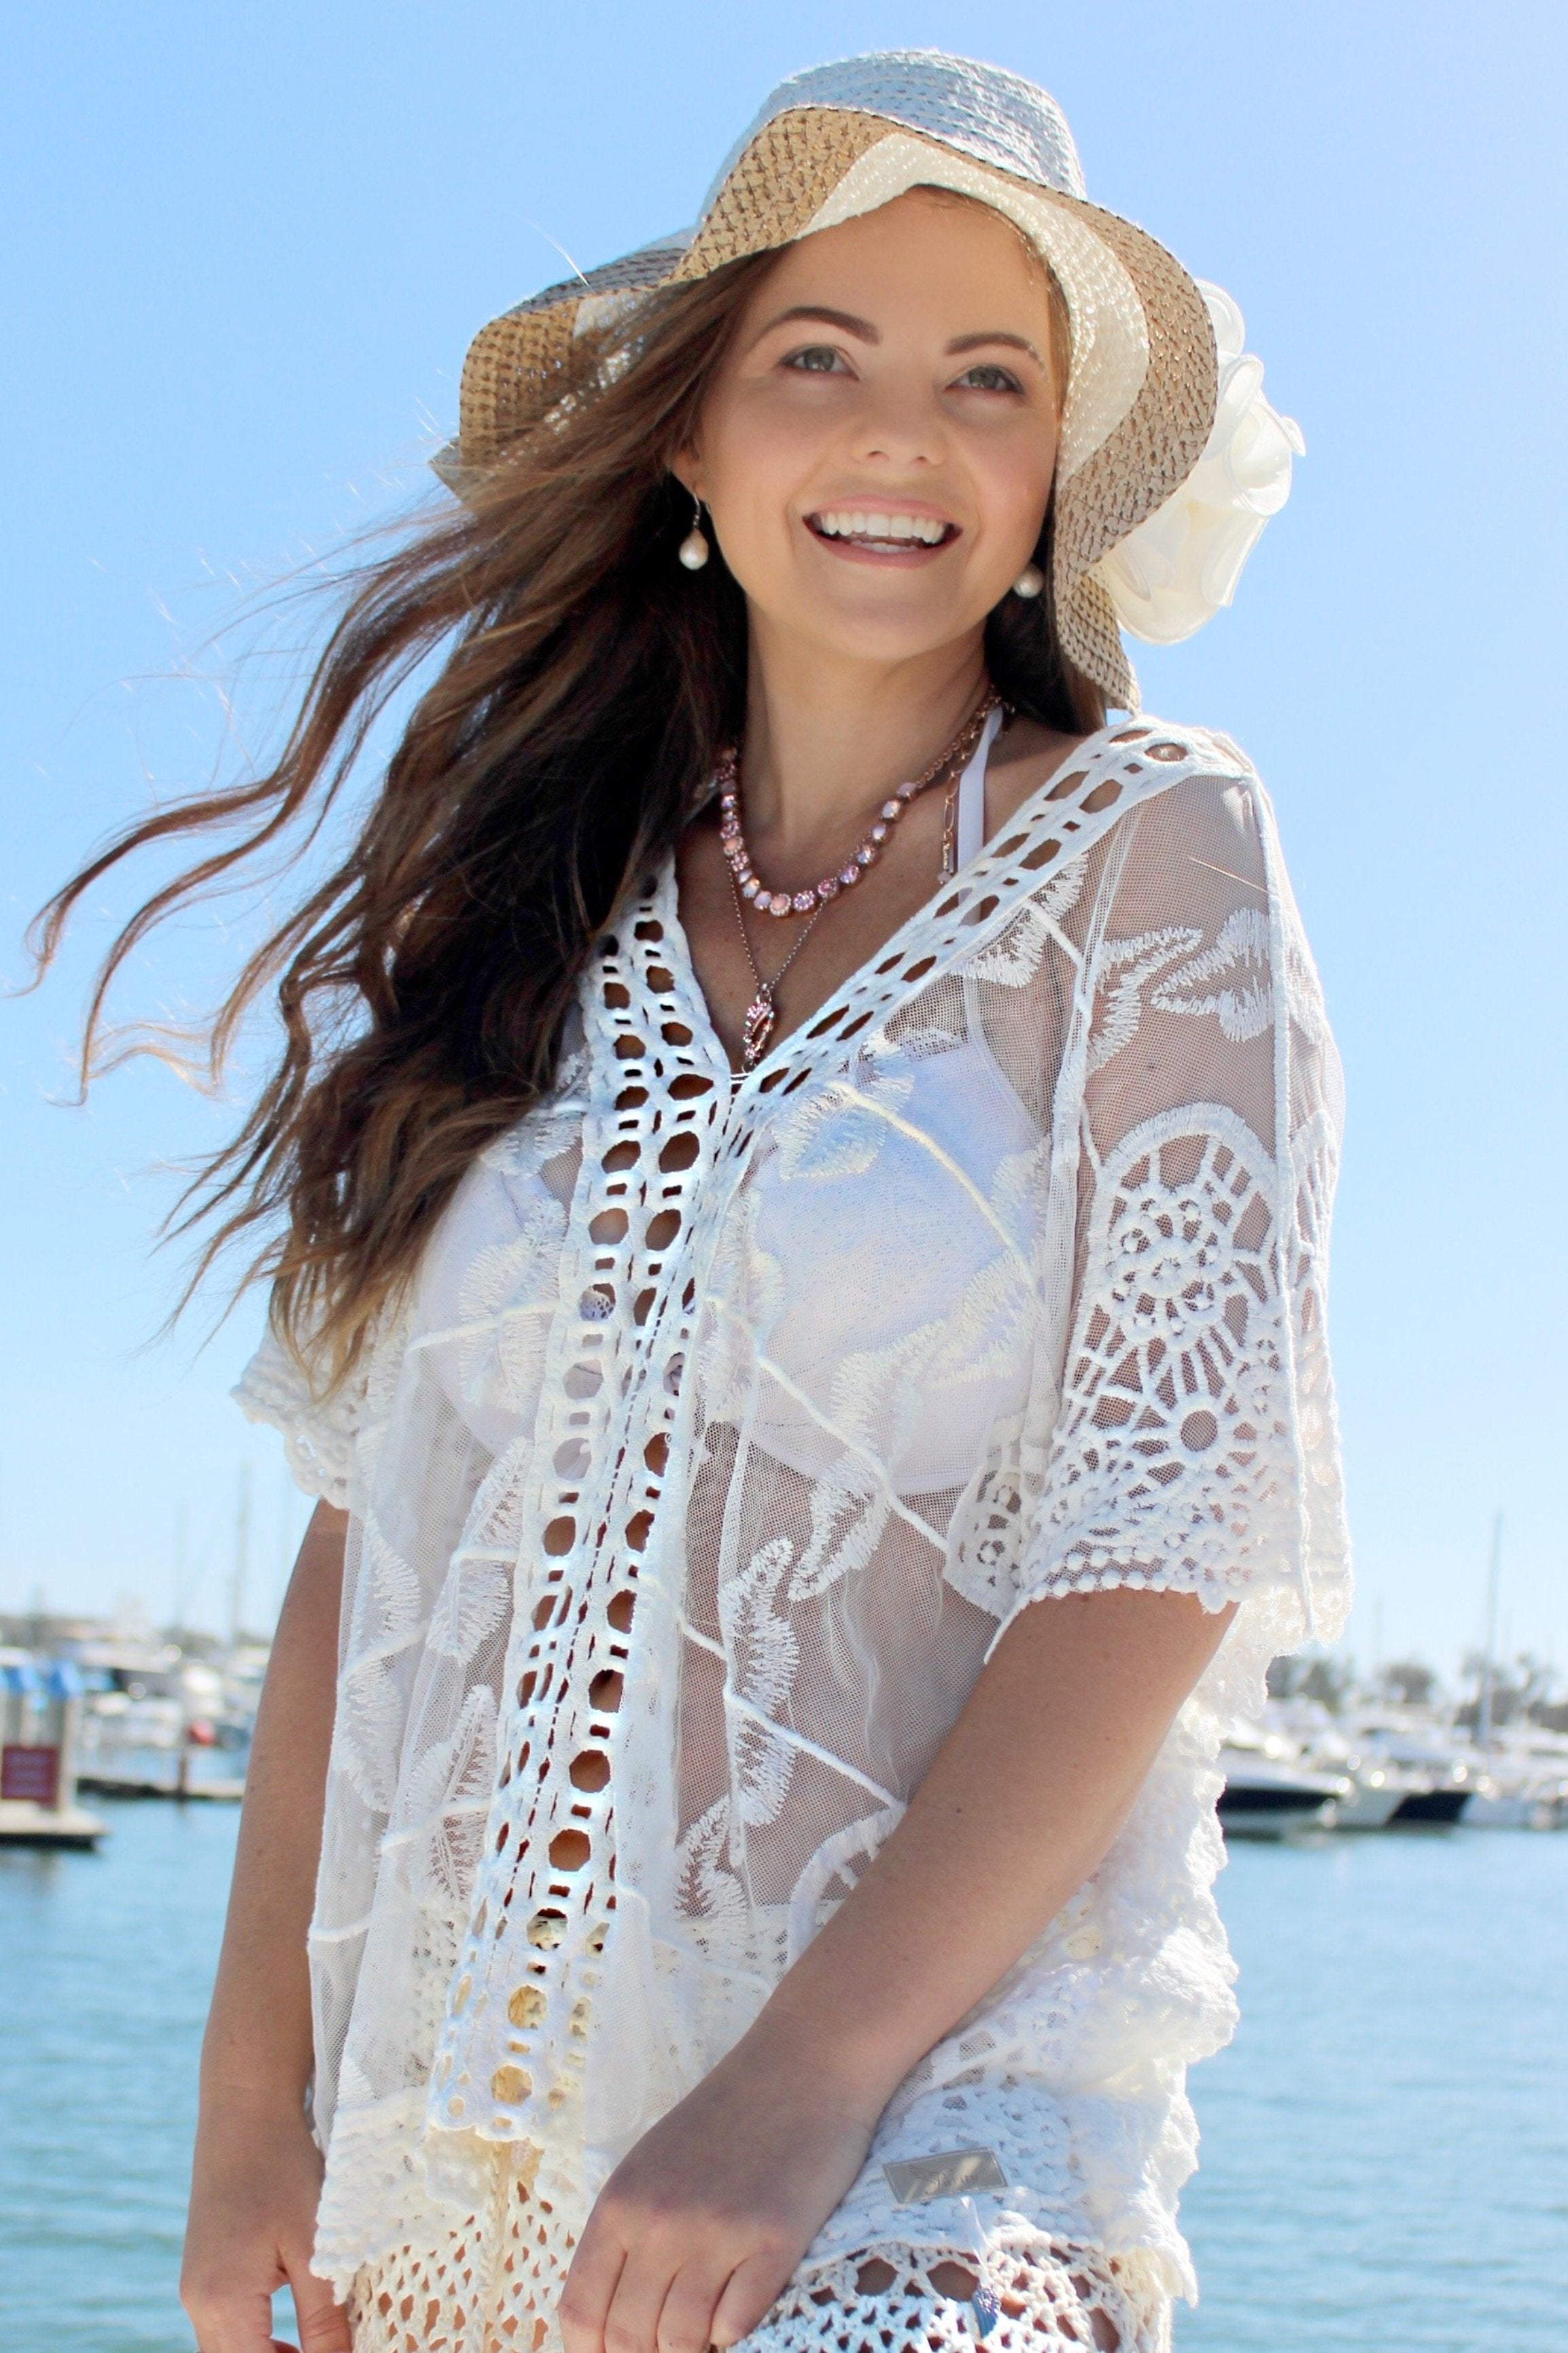 White Jo Jo Top - Purity Lace Designs